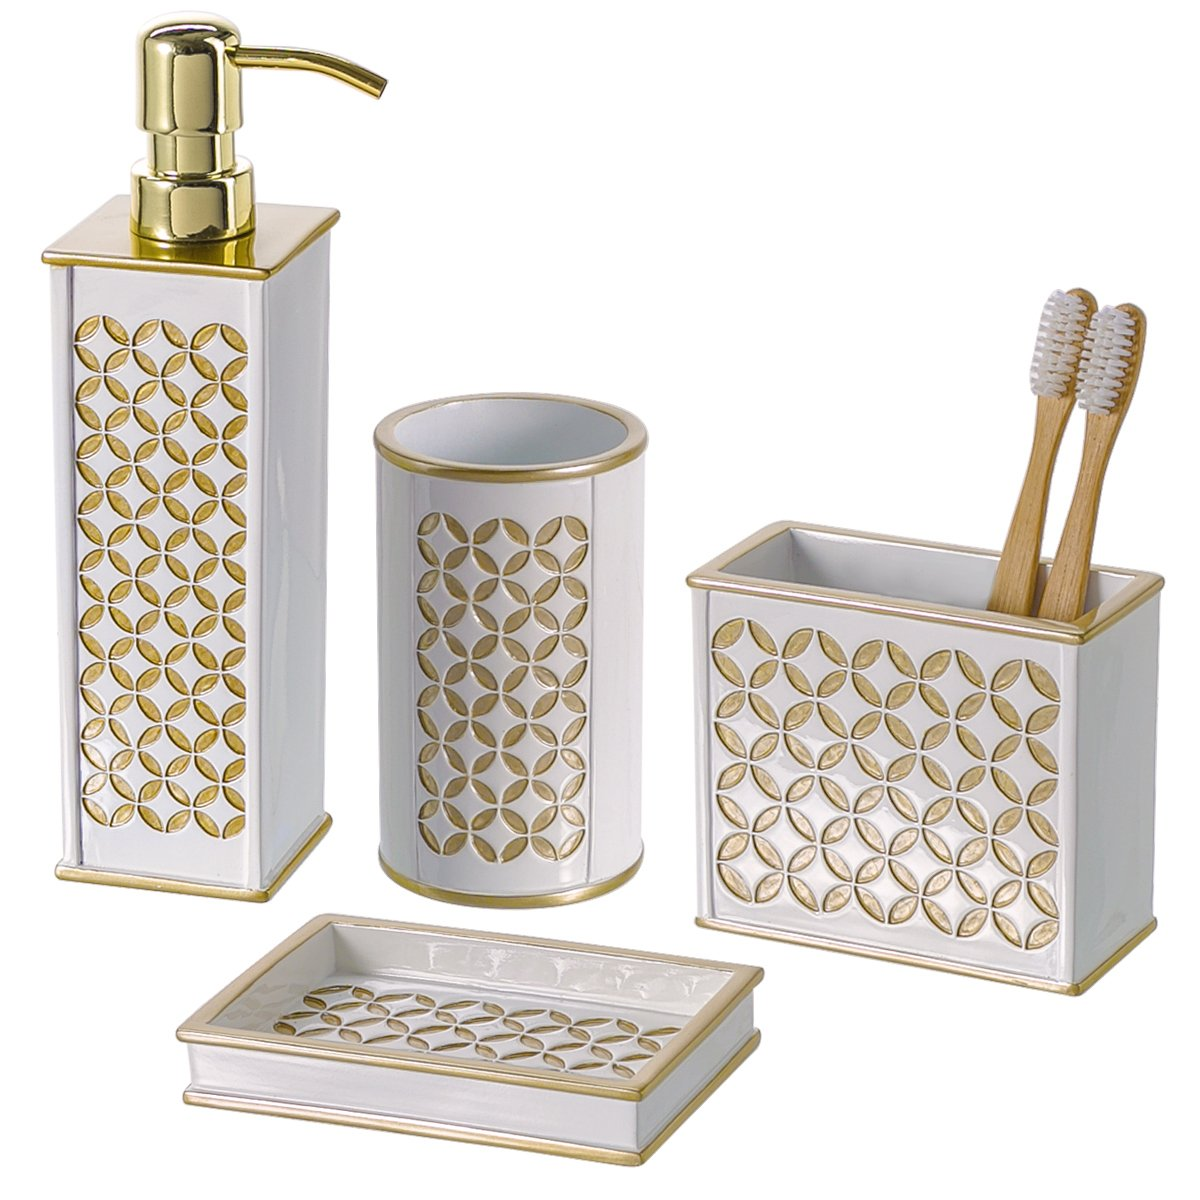 Bathroom Accessories Set Of 4 Piece Bathroom Accessories Set Dispenser Toothbrush